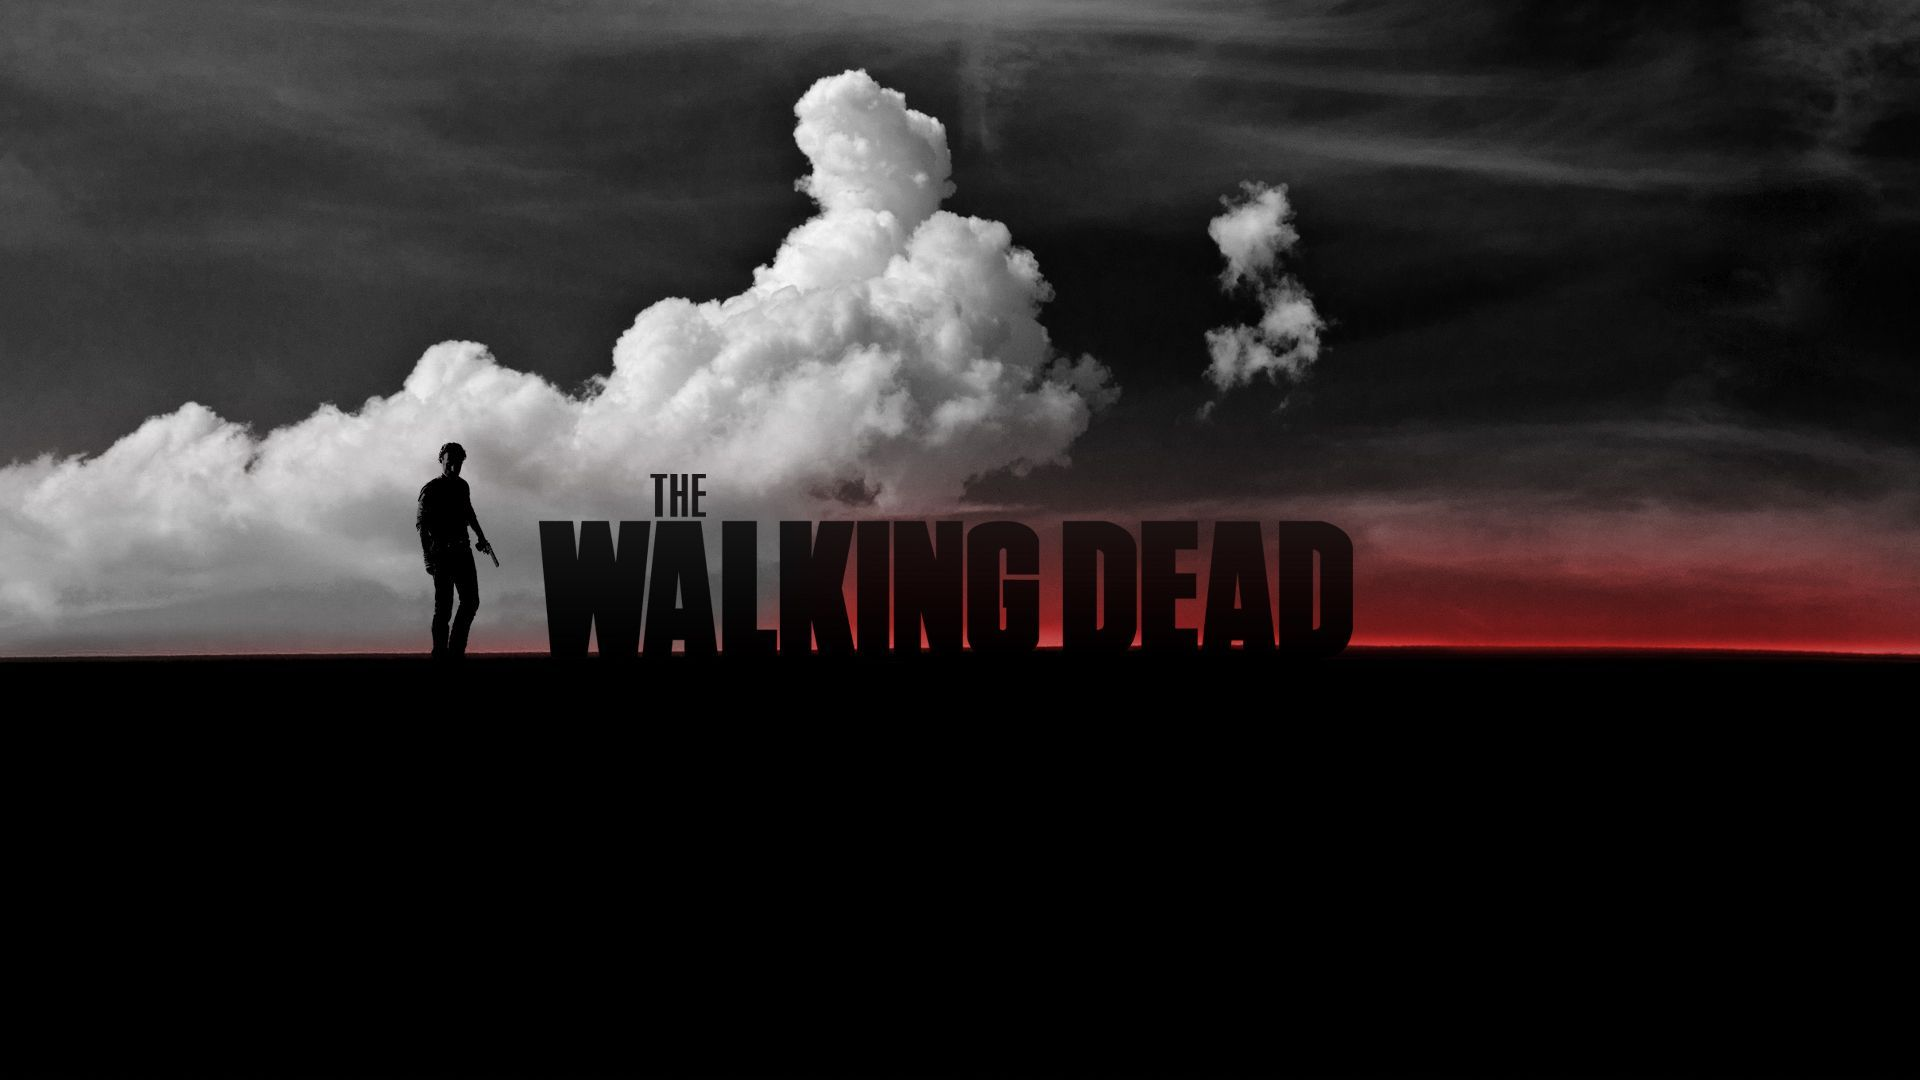 The Walking Dead Wallpaper 1920x1080 Need Iphone 6s Plus